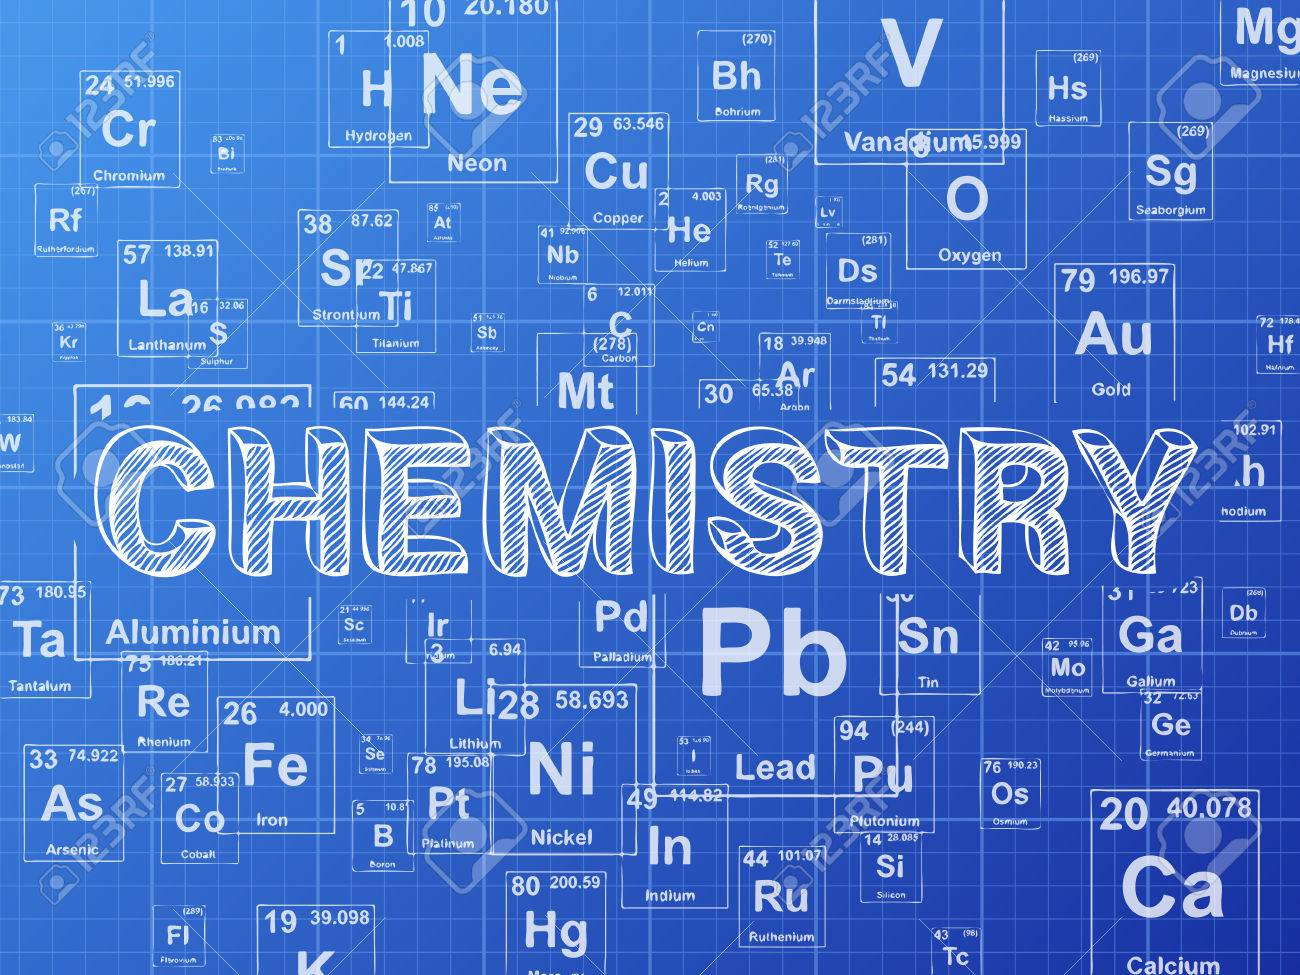 Words using periodic table symbols images periodic table images chemistry word on periodic table symbols blueprint background chemistry word on periodic table symbols blueprint background gamestrikefo Image collections